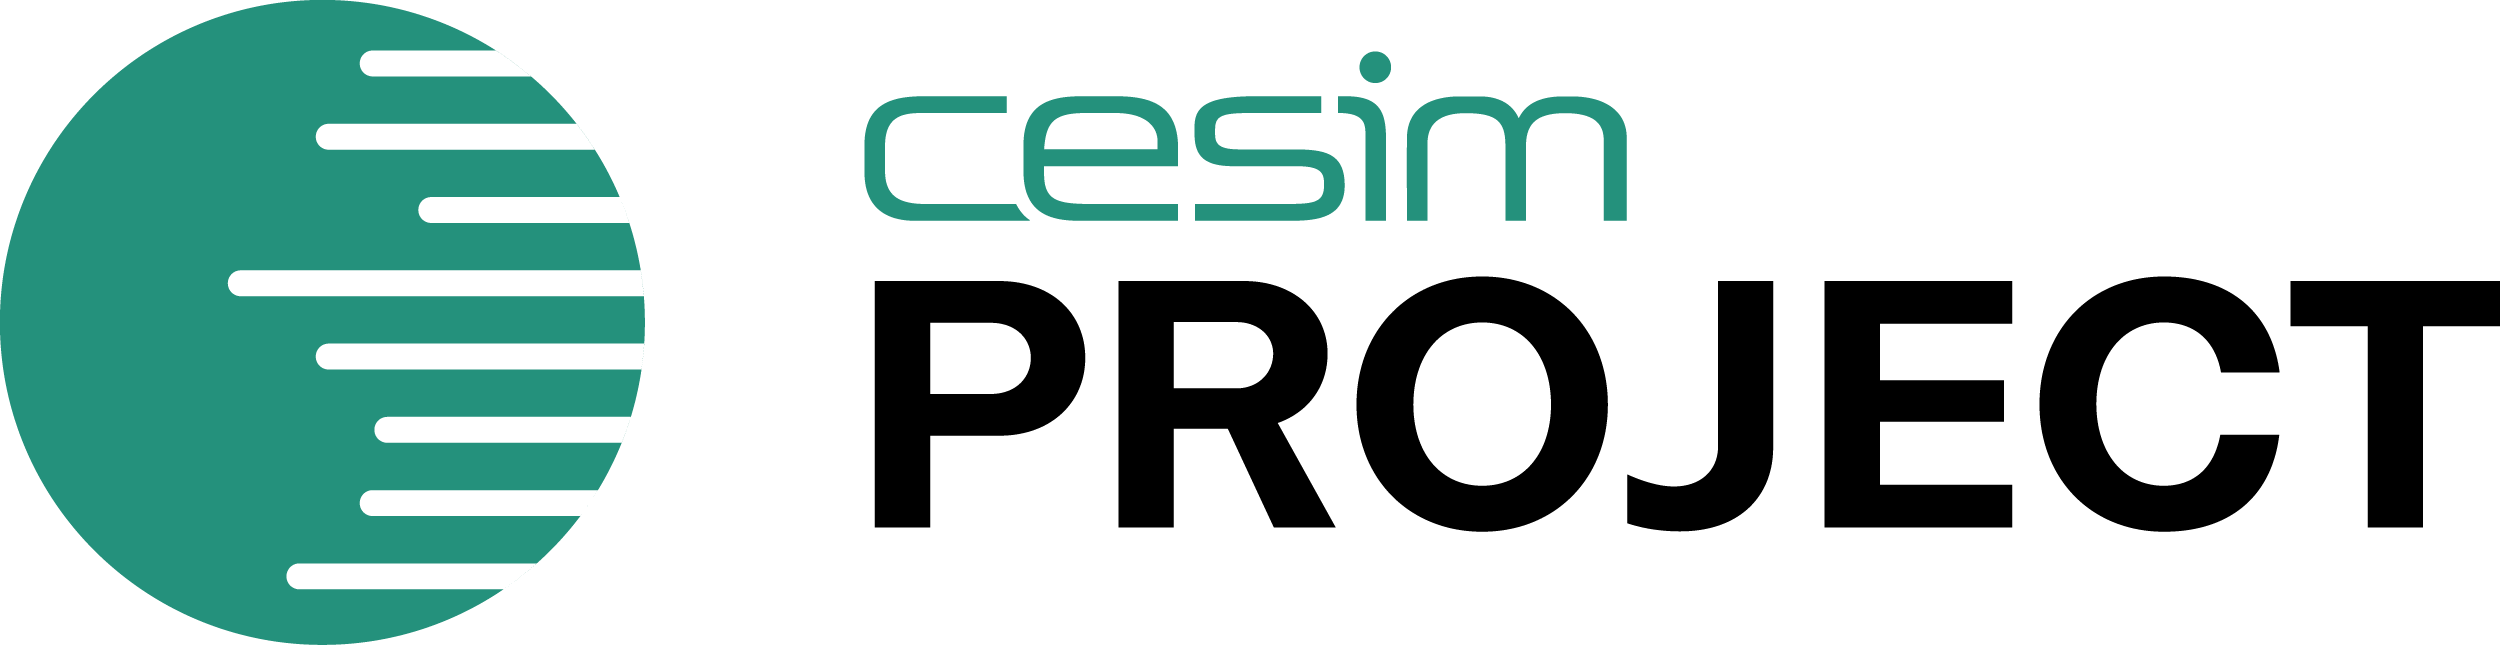 Cesim Project - Projektmanagement Planspiel